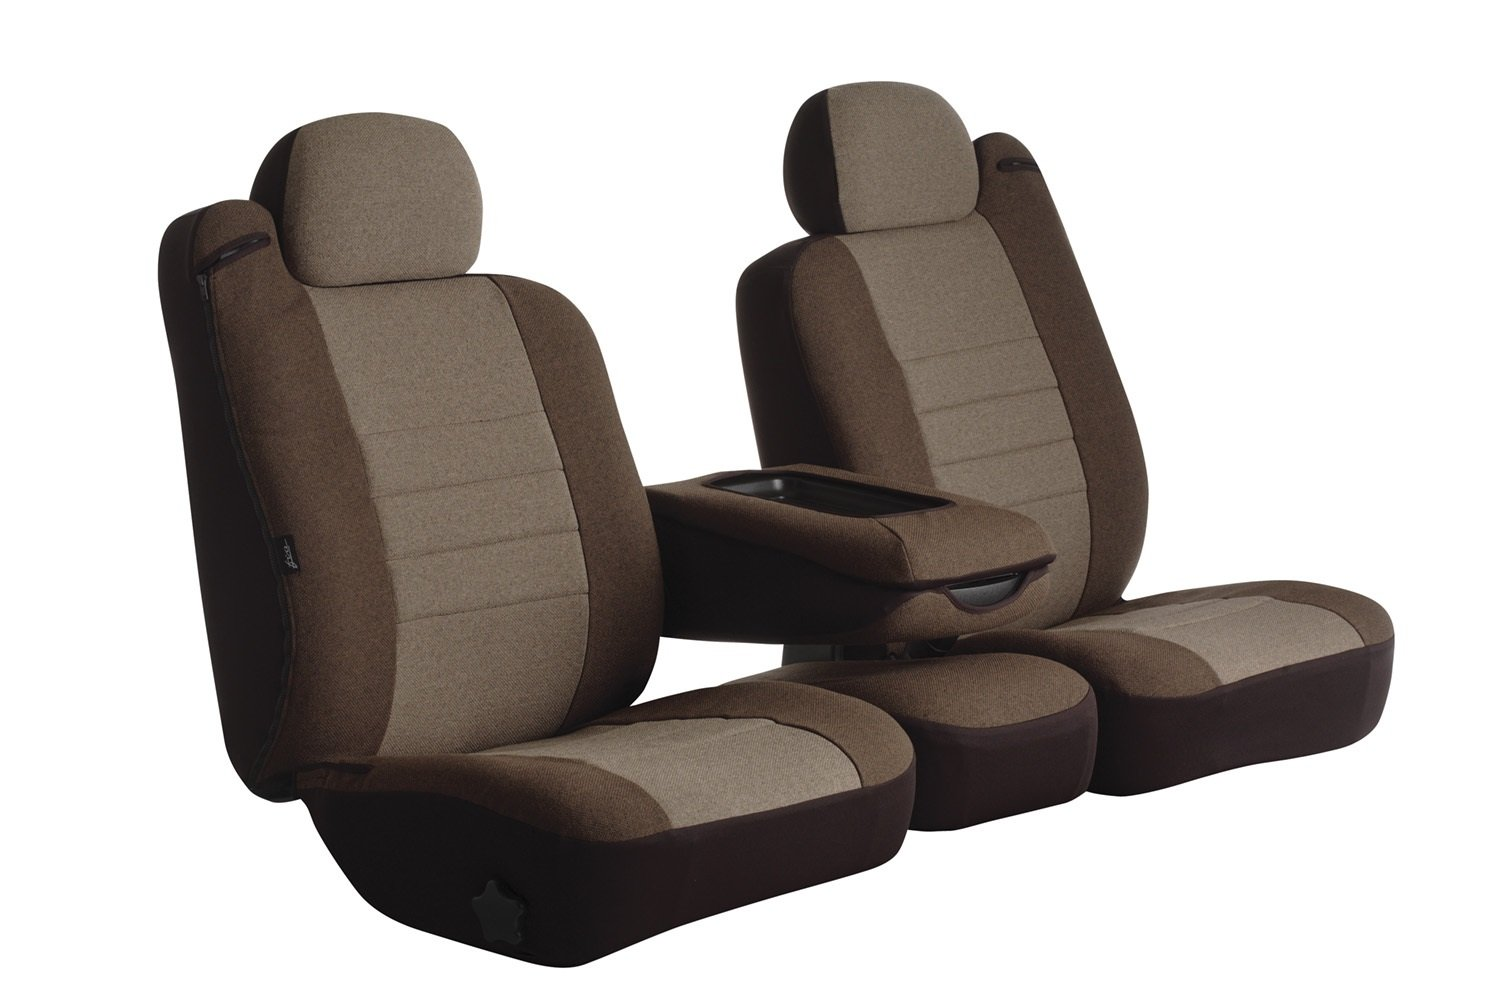 Fia OE37-35 TAUPE Custom Fit Front Seat Cover Split Seat 40/20/40 - Tweed, (Taupe)